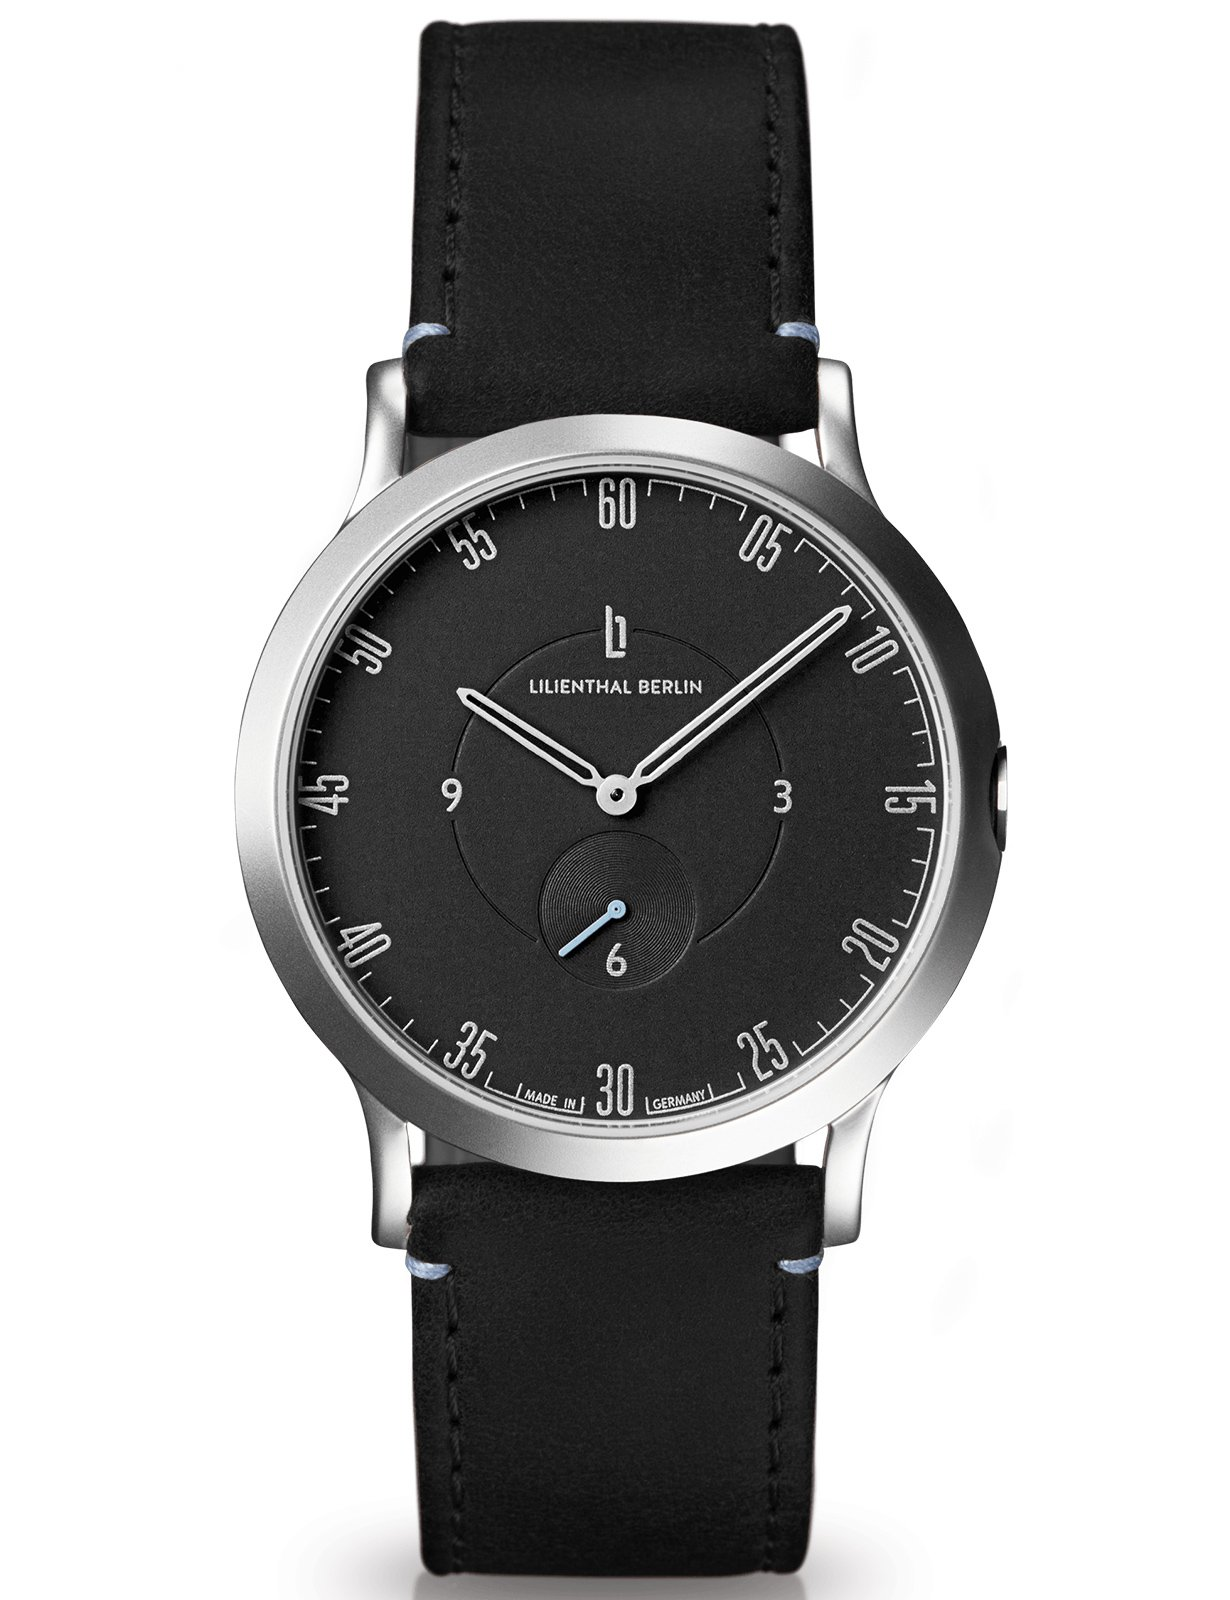 Lilienthal Berlin Watch - Made in Germany - Designed in Berlin. Model L1 with Stainless Steel Case (Size: 37.5 mm, Case: silver / Dial: black / Strap: black)